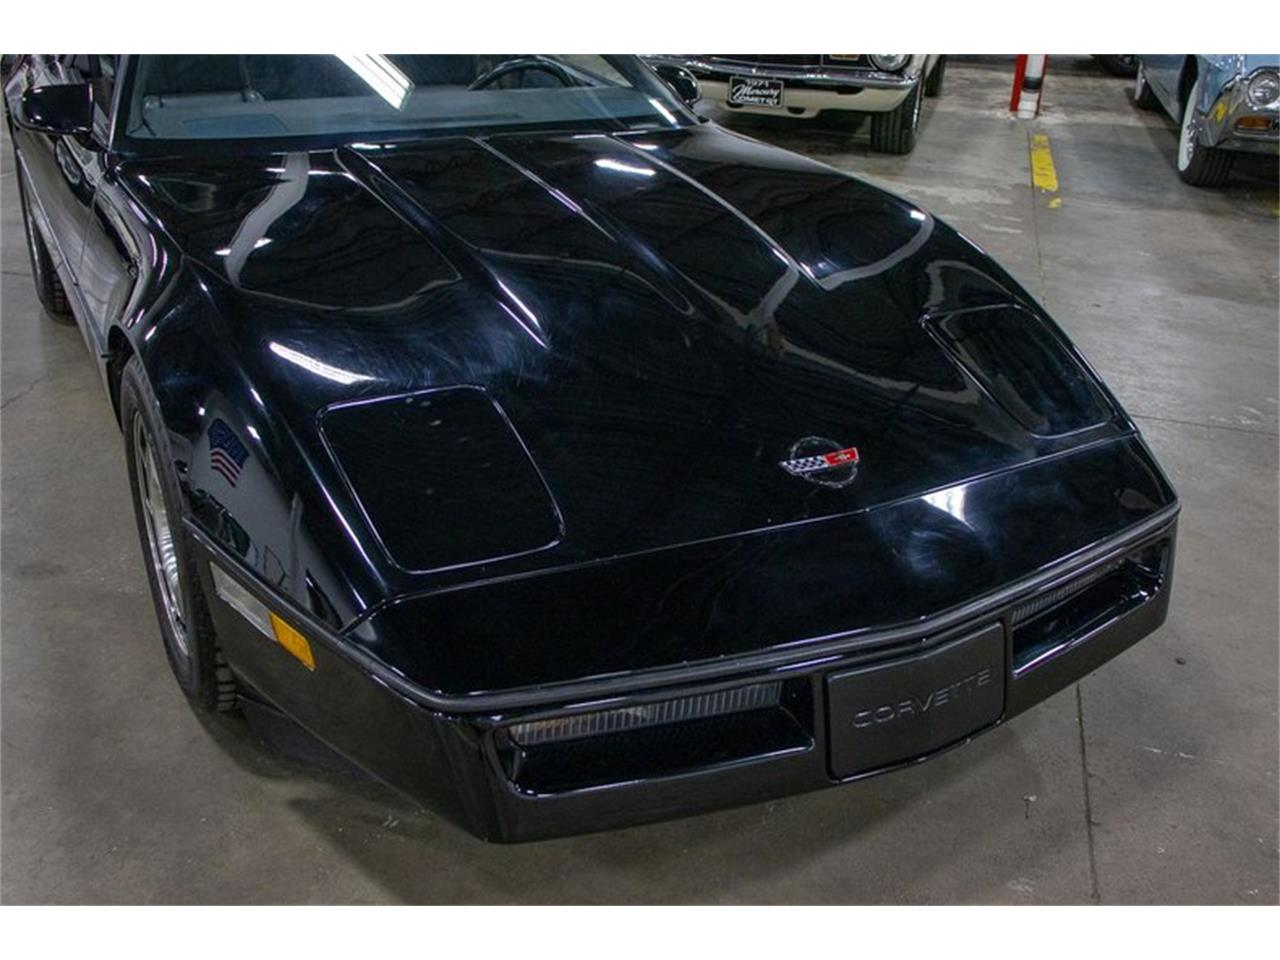 1985 Chevrolet Corvette (CC-1379981) for sale in Kentwood, Michigan